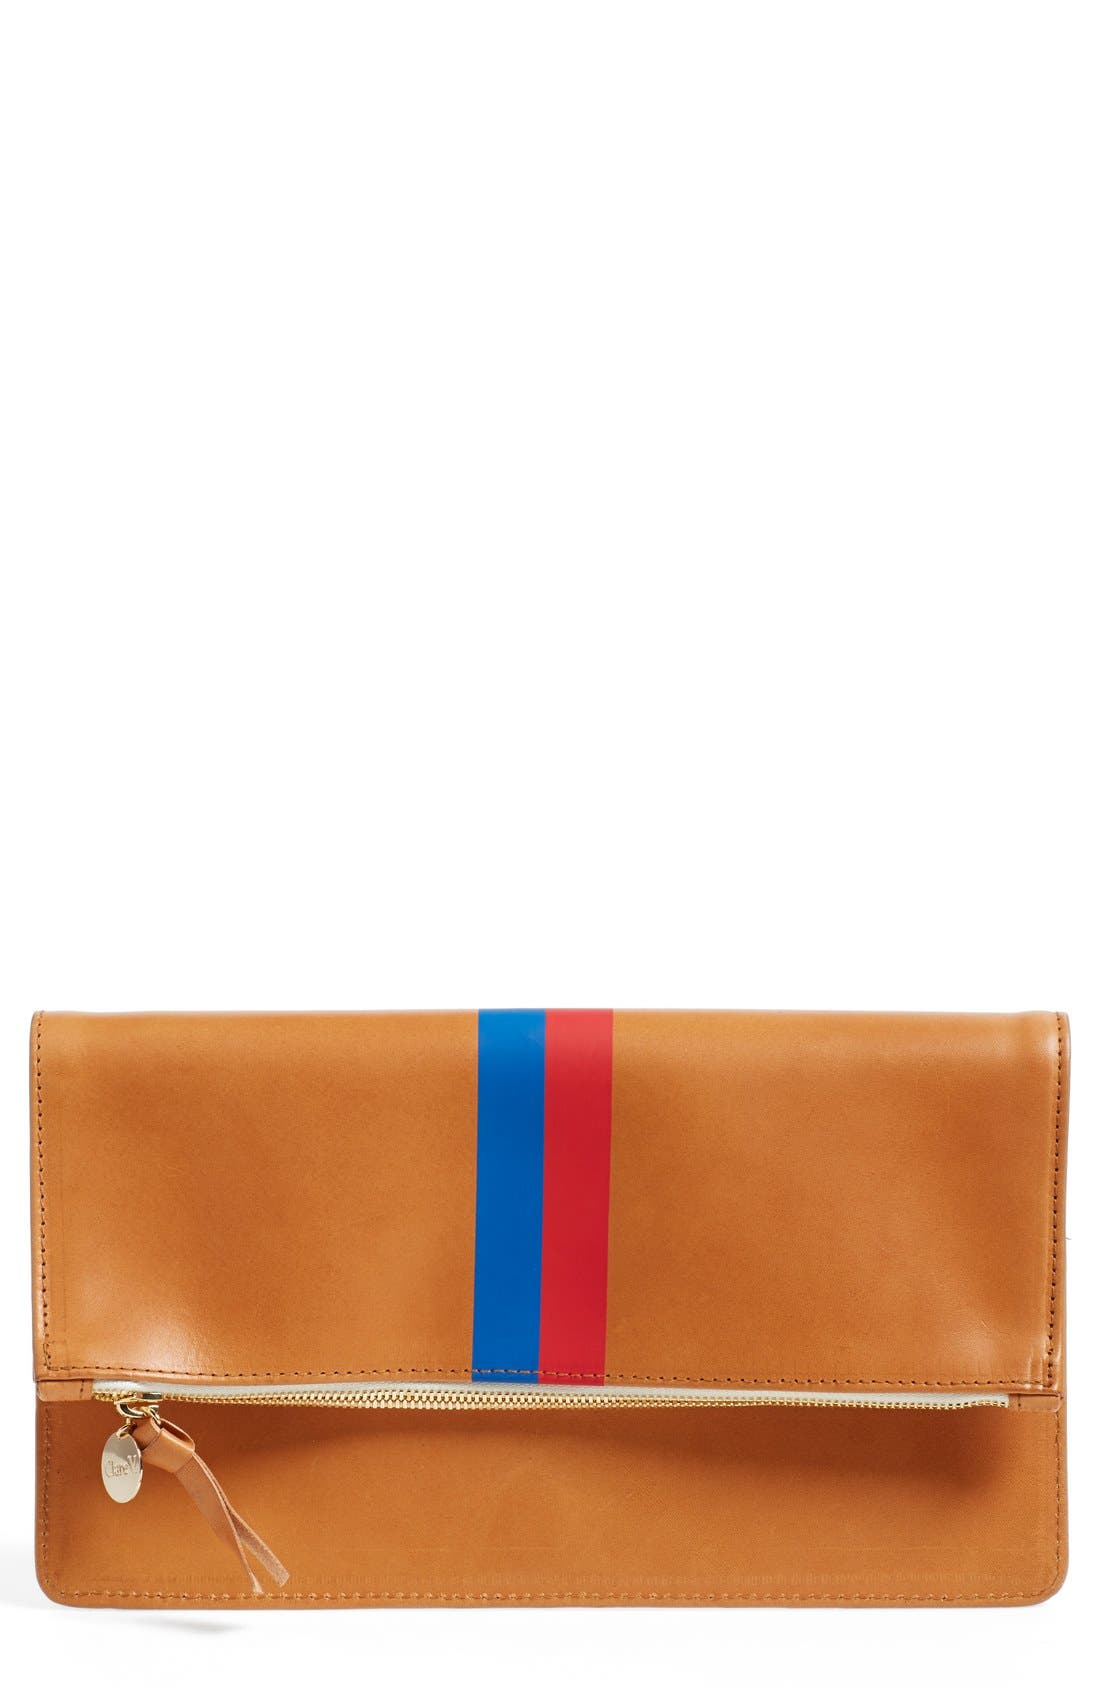 Main Image - Clare V. 'Margot' Stripe Leather Foldover Clutch